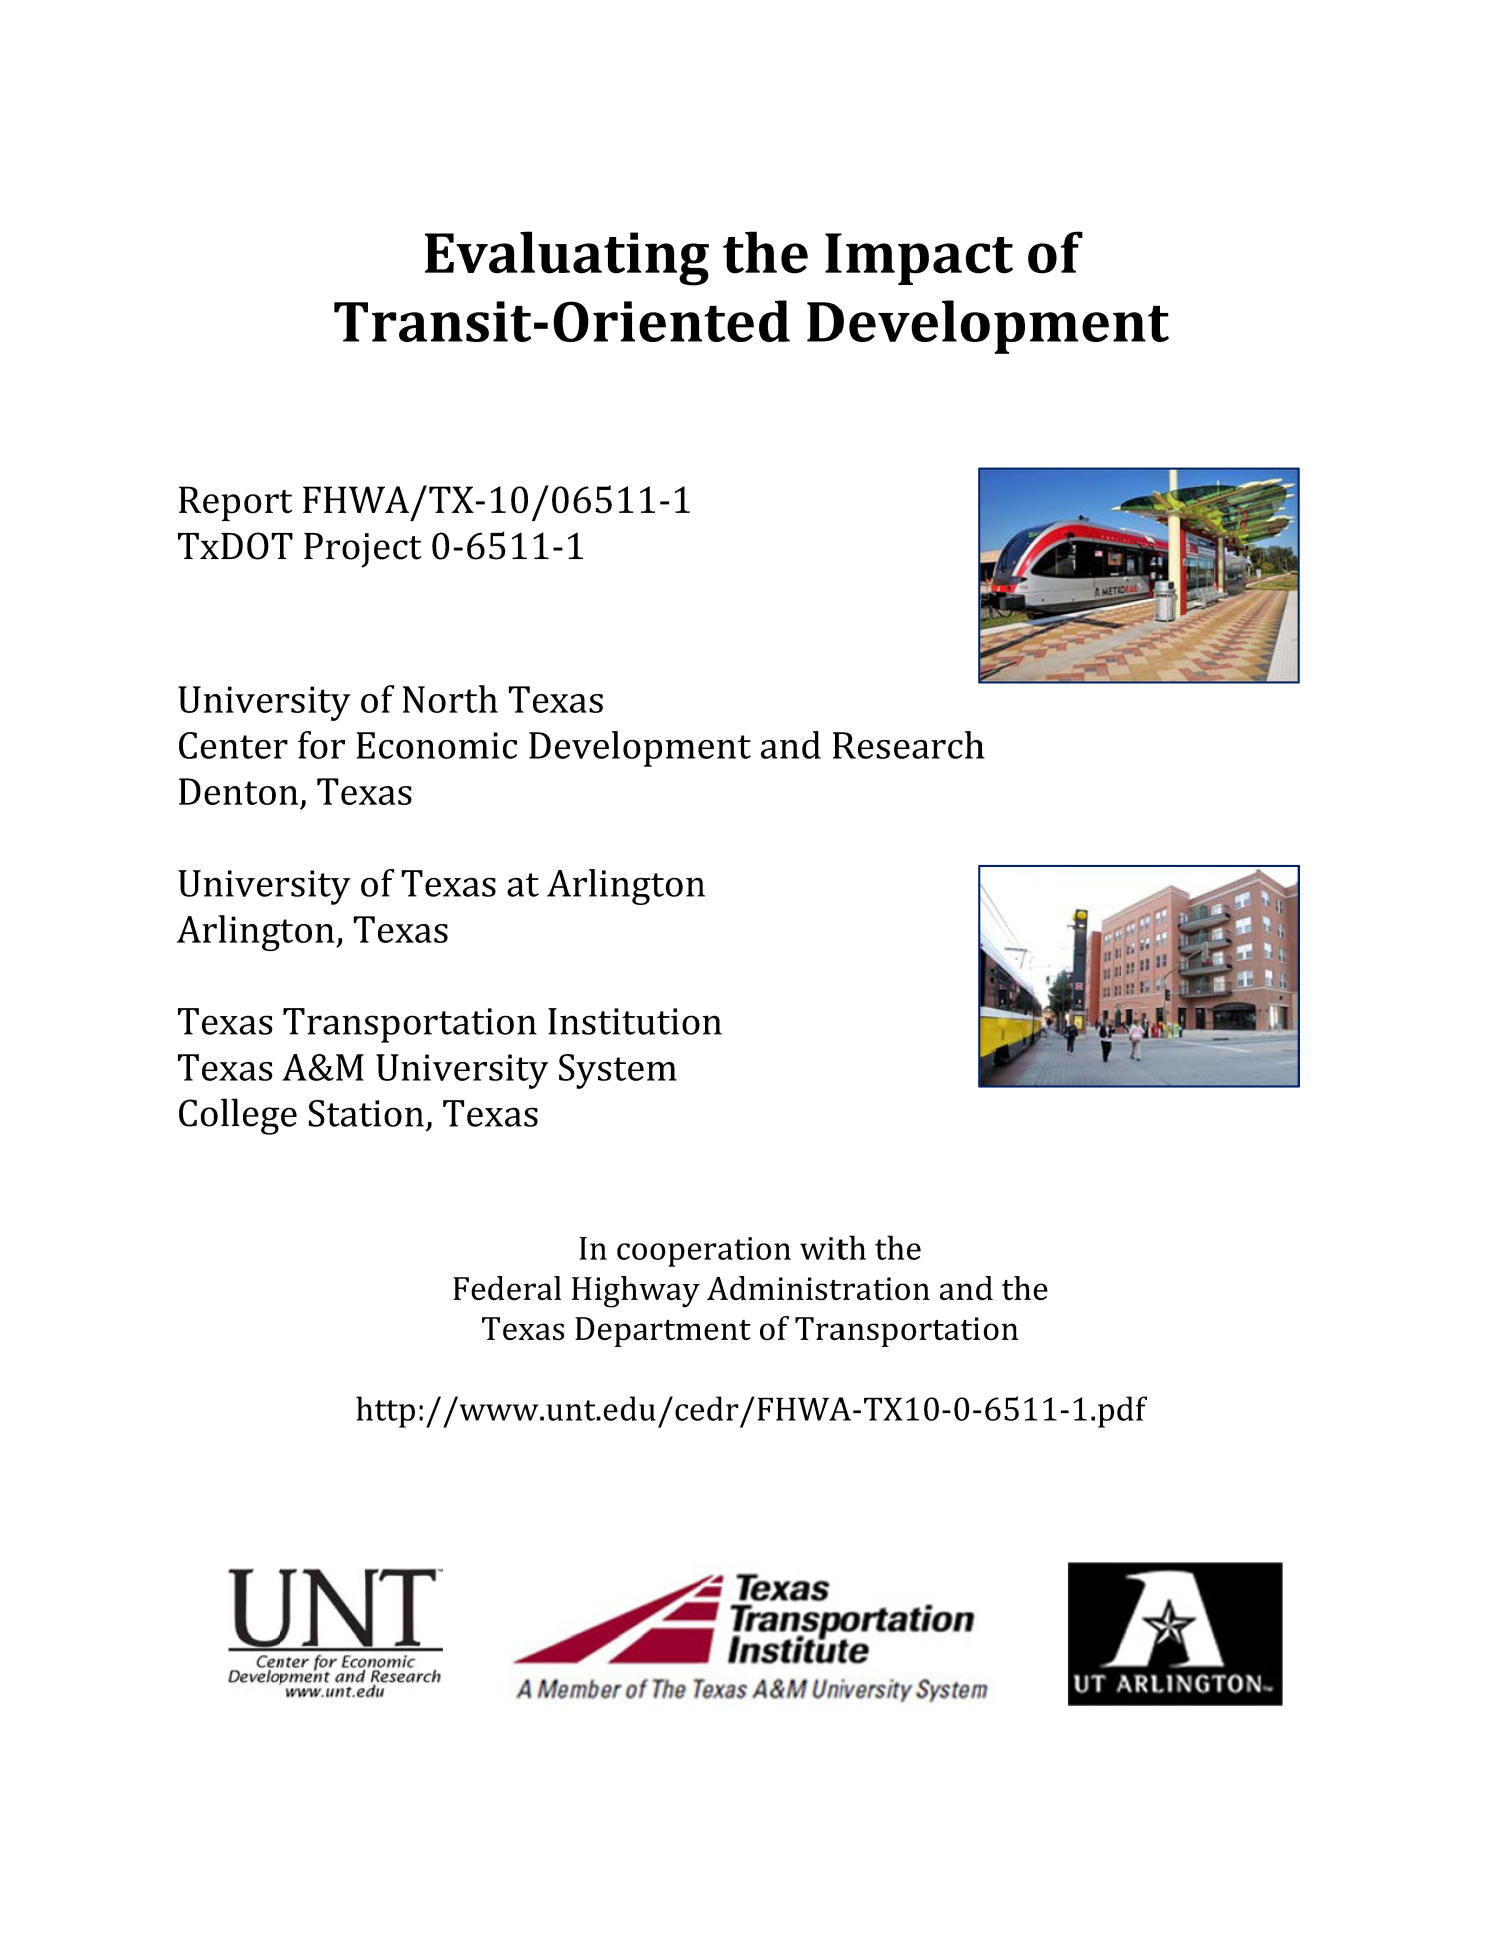 Evaluating the Impact of Transit-Oriented Development                                                                                                      Front Cover